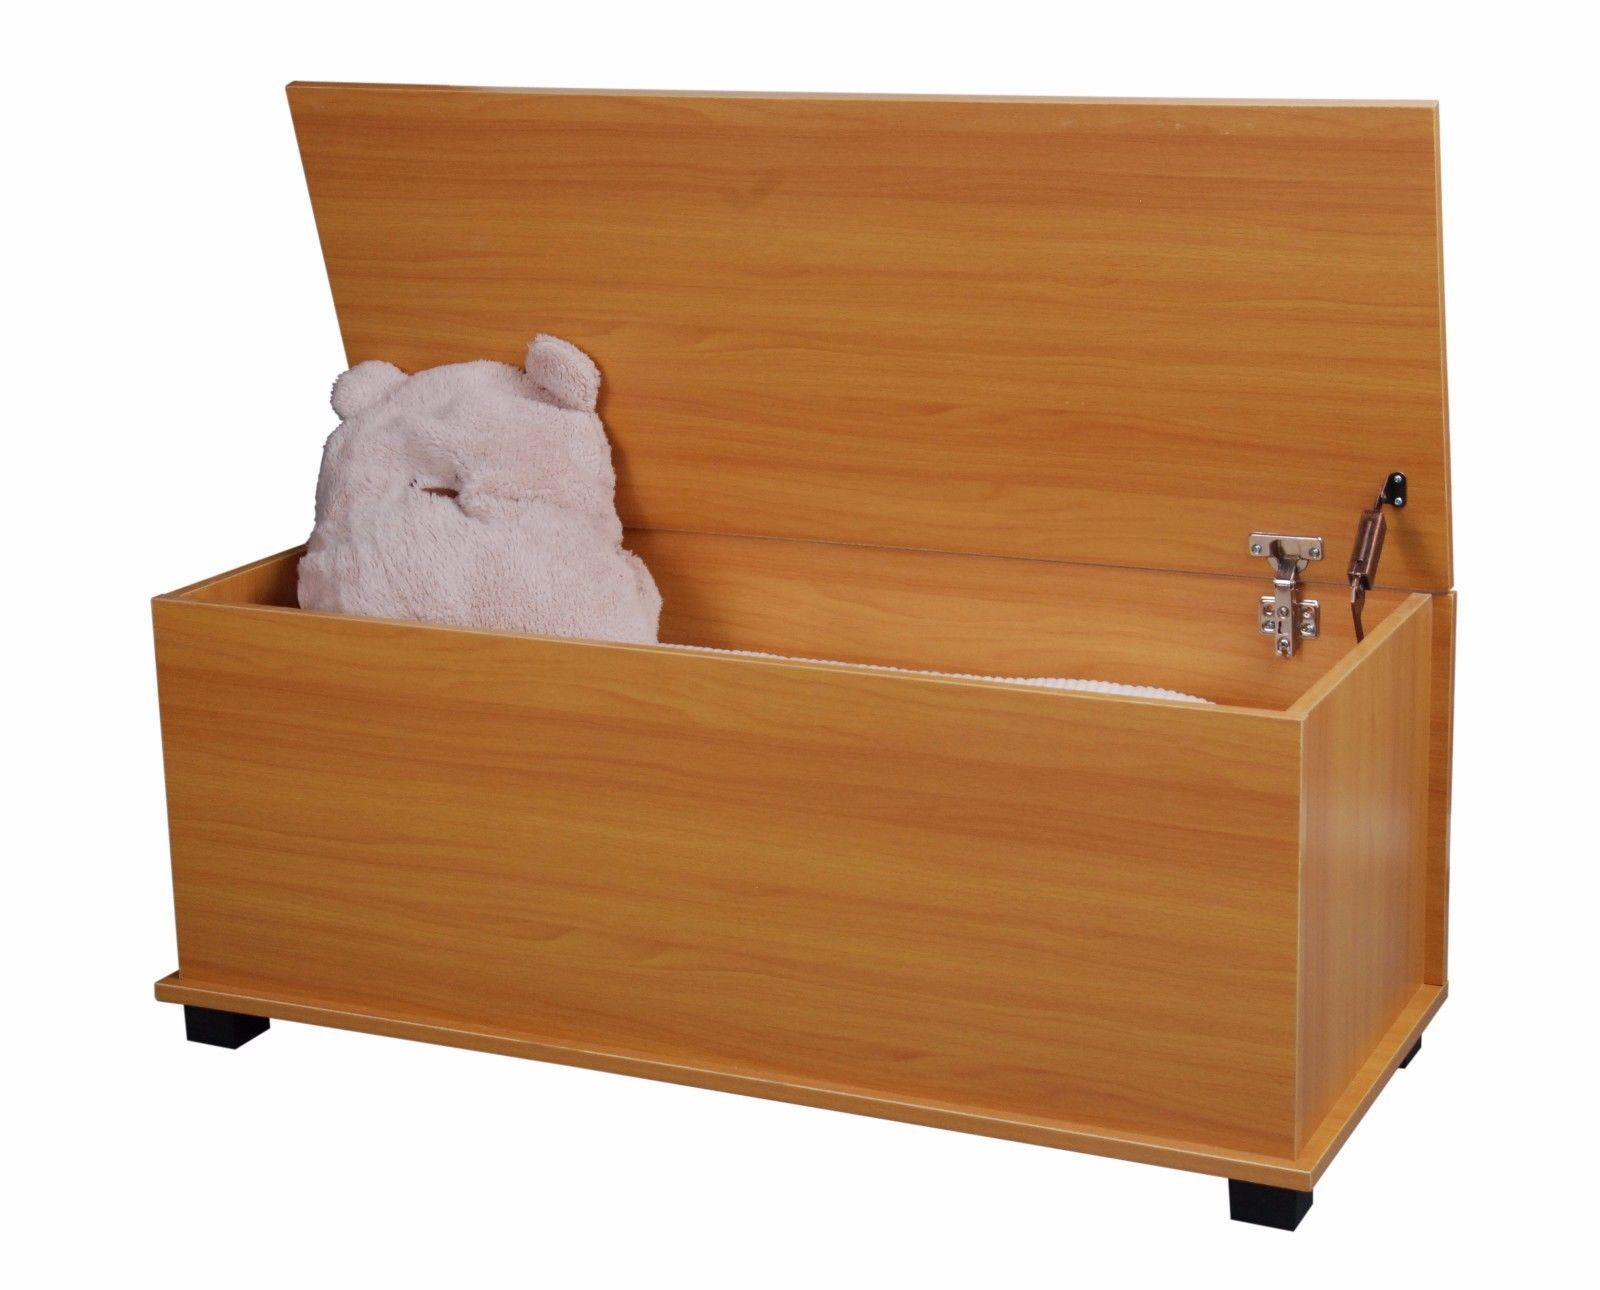 Large ottoman wooden storage toy box chest trunk footstool